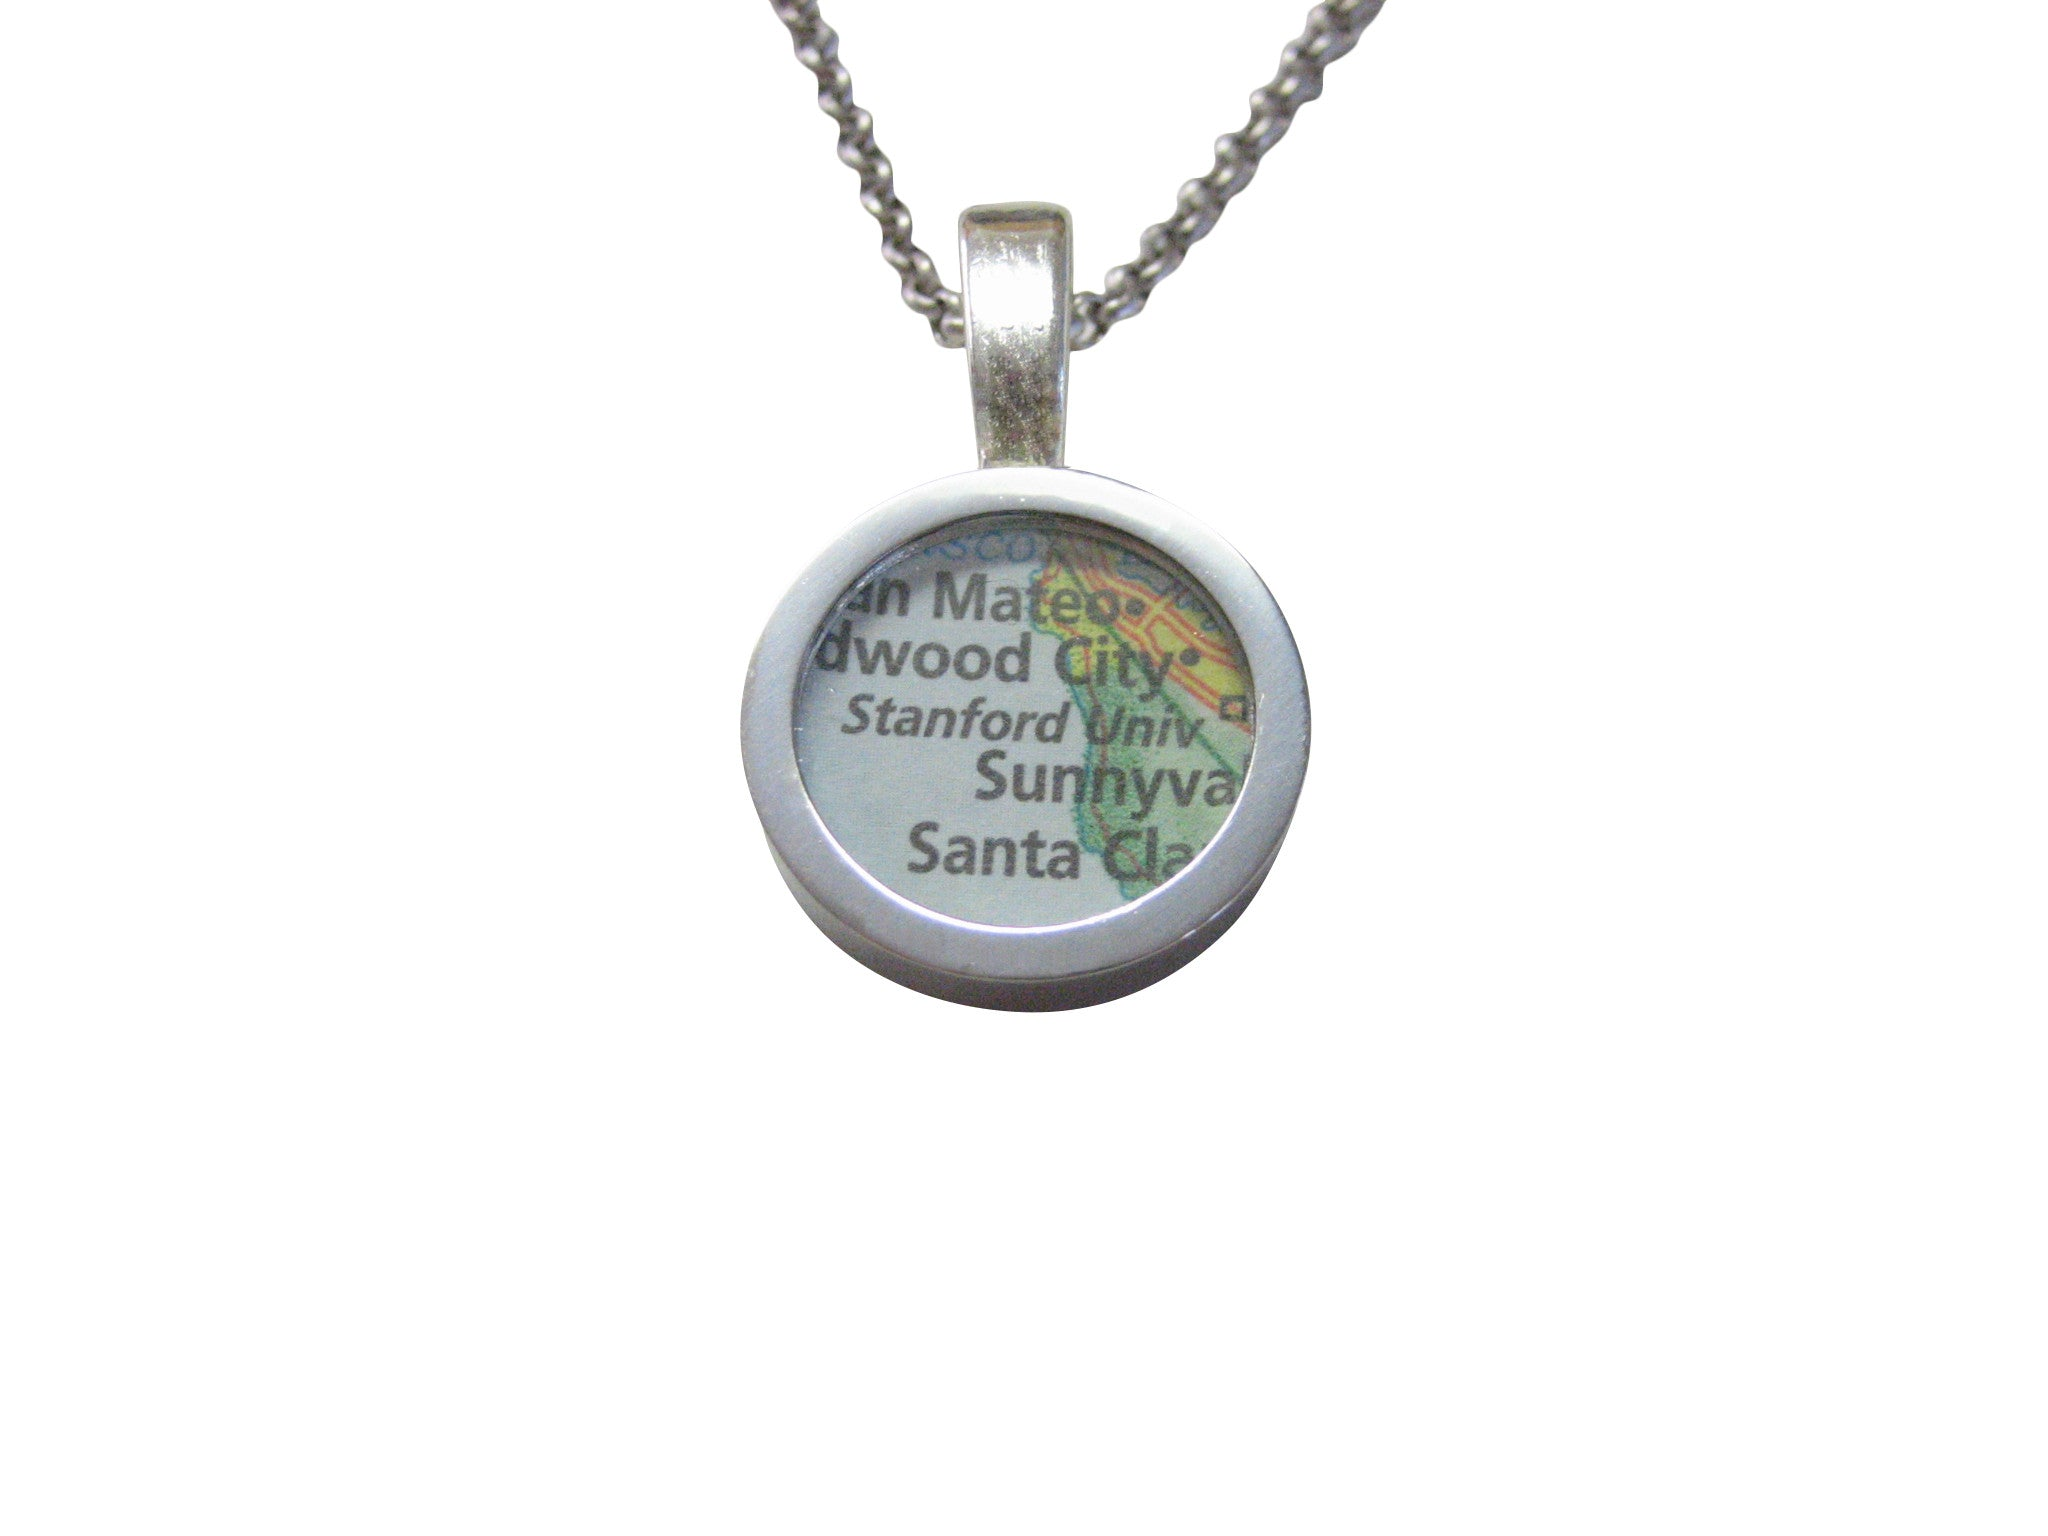 Stanford University Map Pendant Necklace